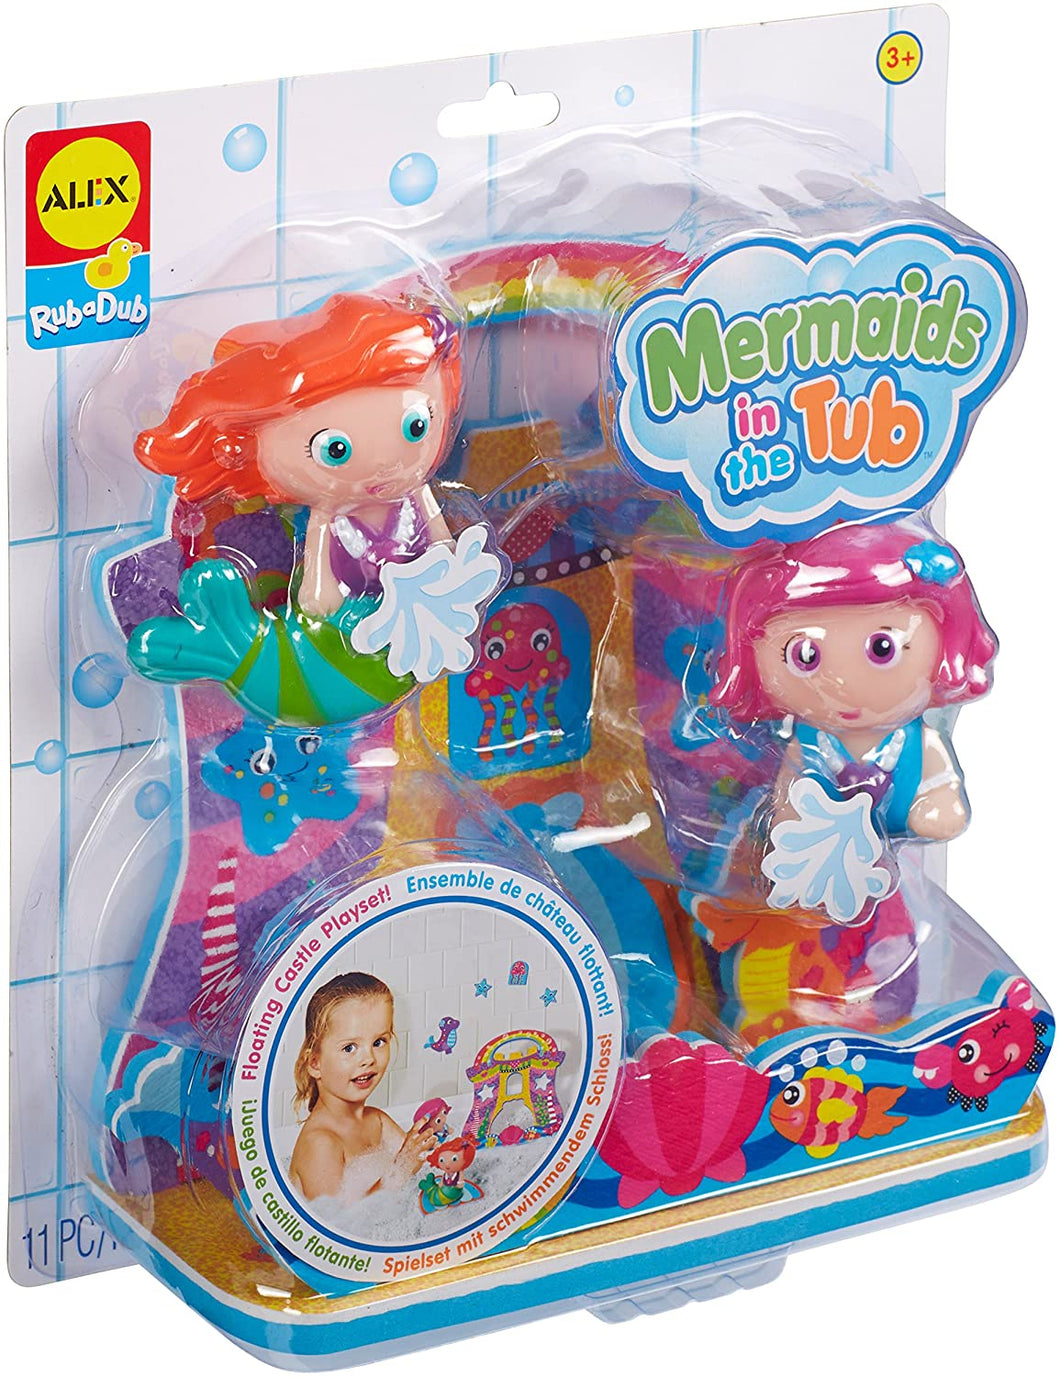 Alex Toys Mermaids in the Tub